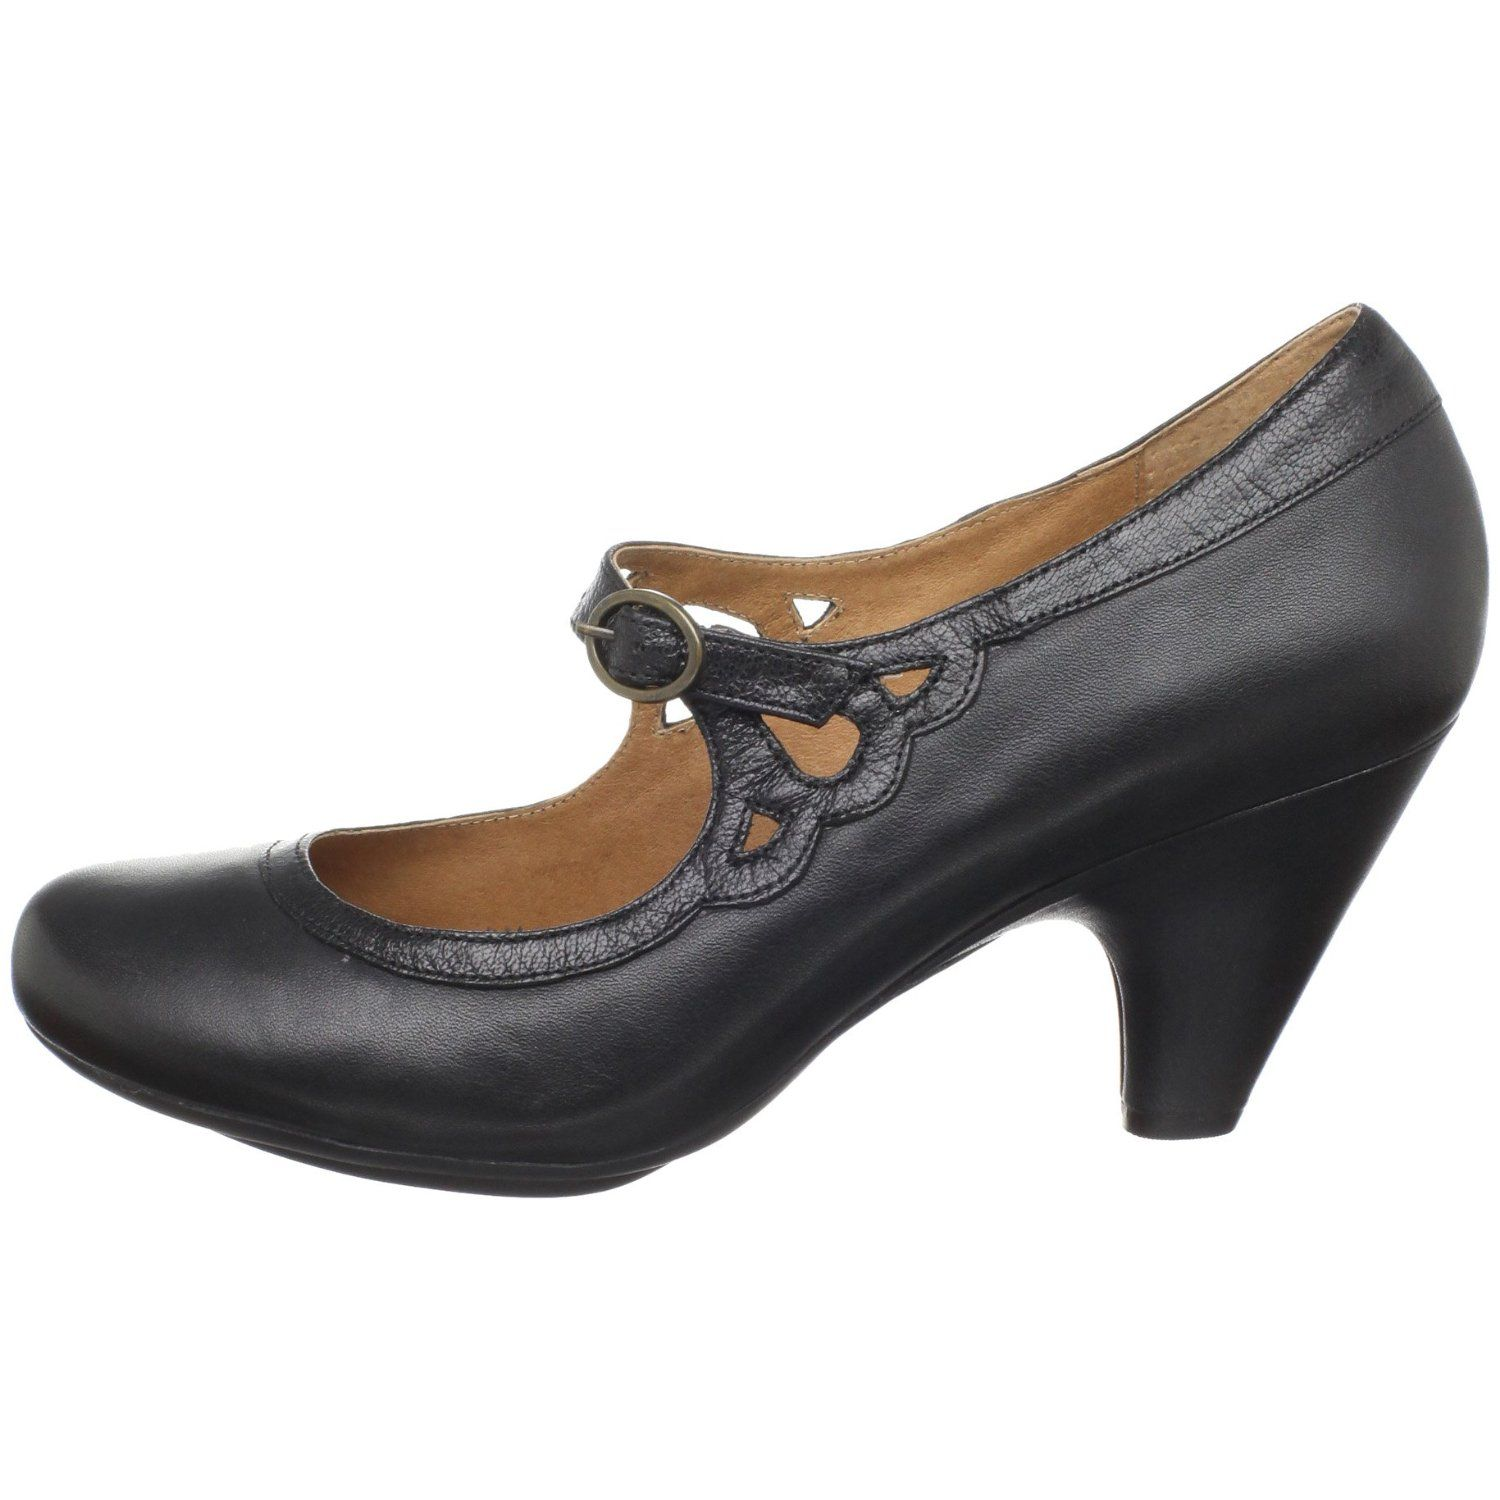 2a171ea080 cute! Indigo by Clarks, looks like they could be good every day work ...